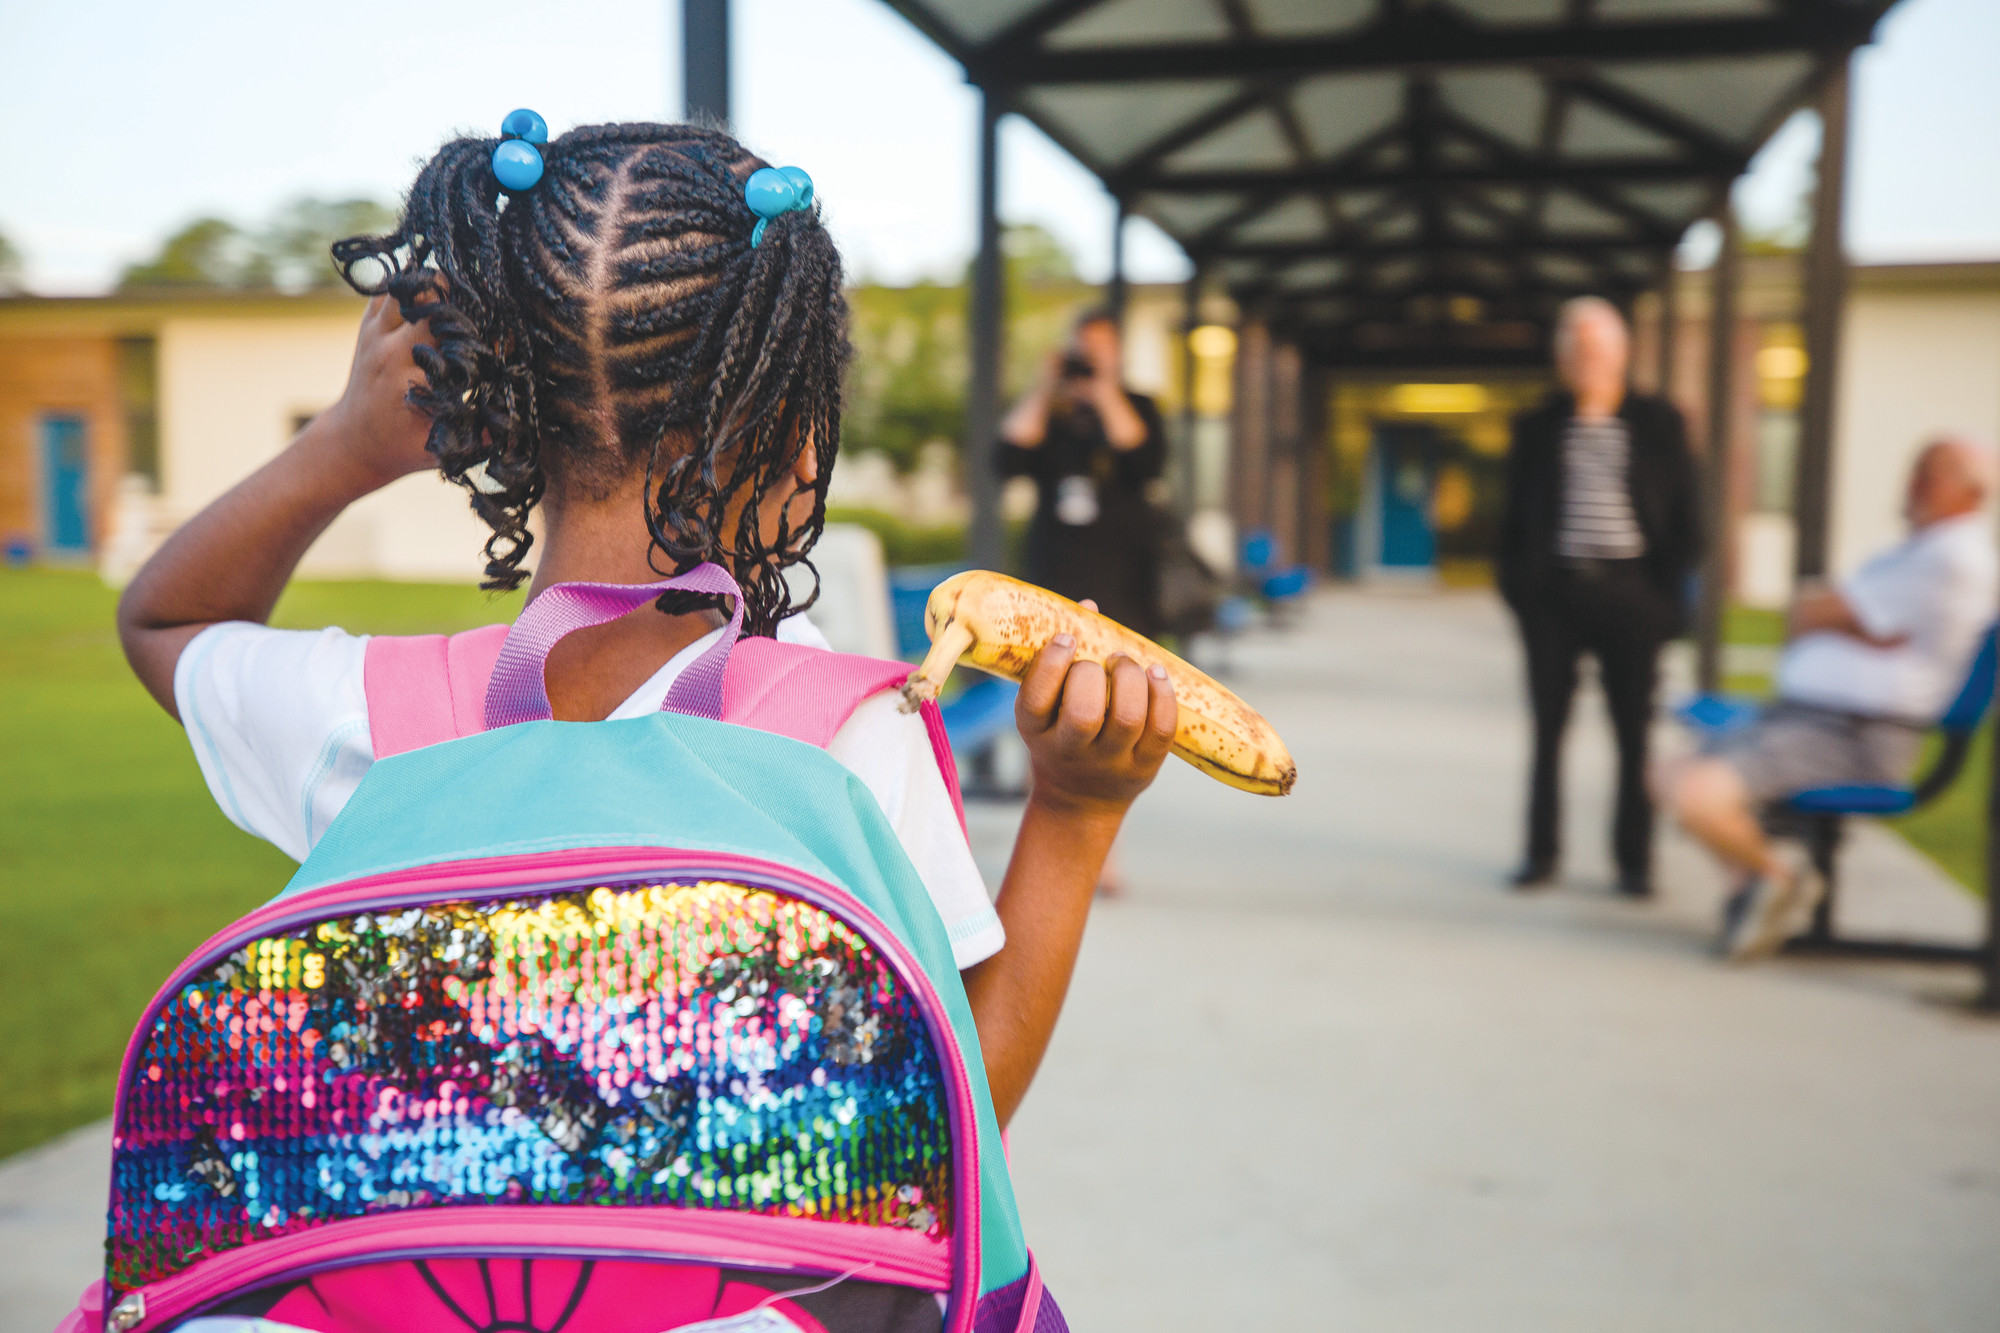 A student at Willow Drive Elementary School walks to her school for the first day on Monday.